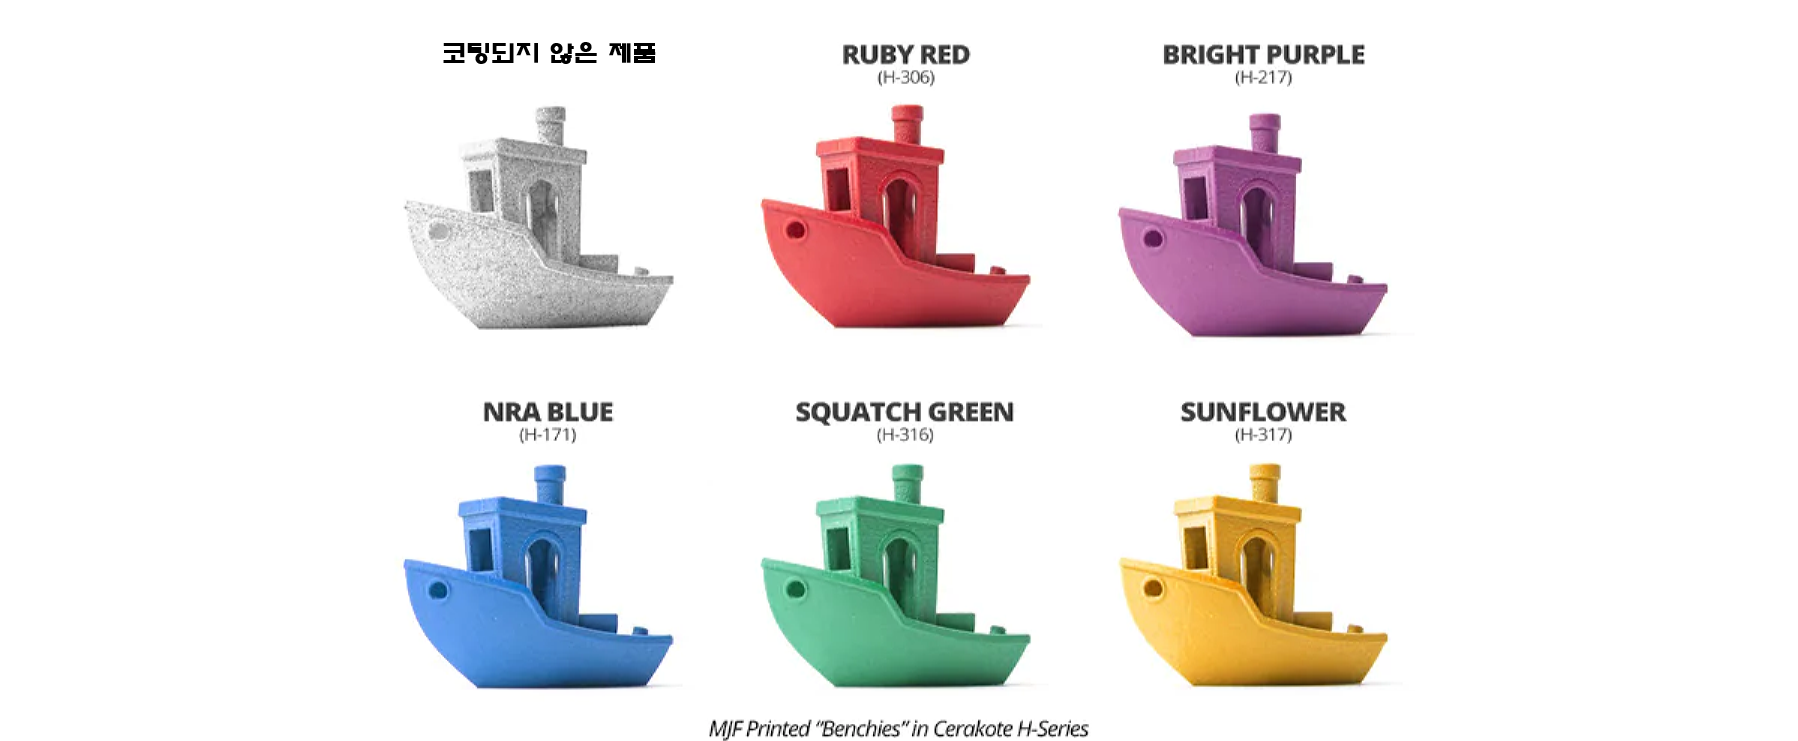 MJF 3D Printed Benchies in H-Series